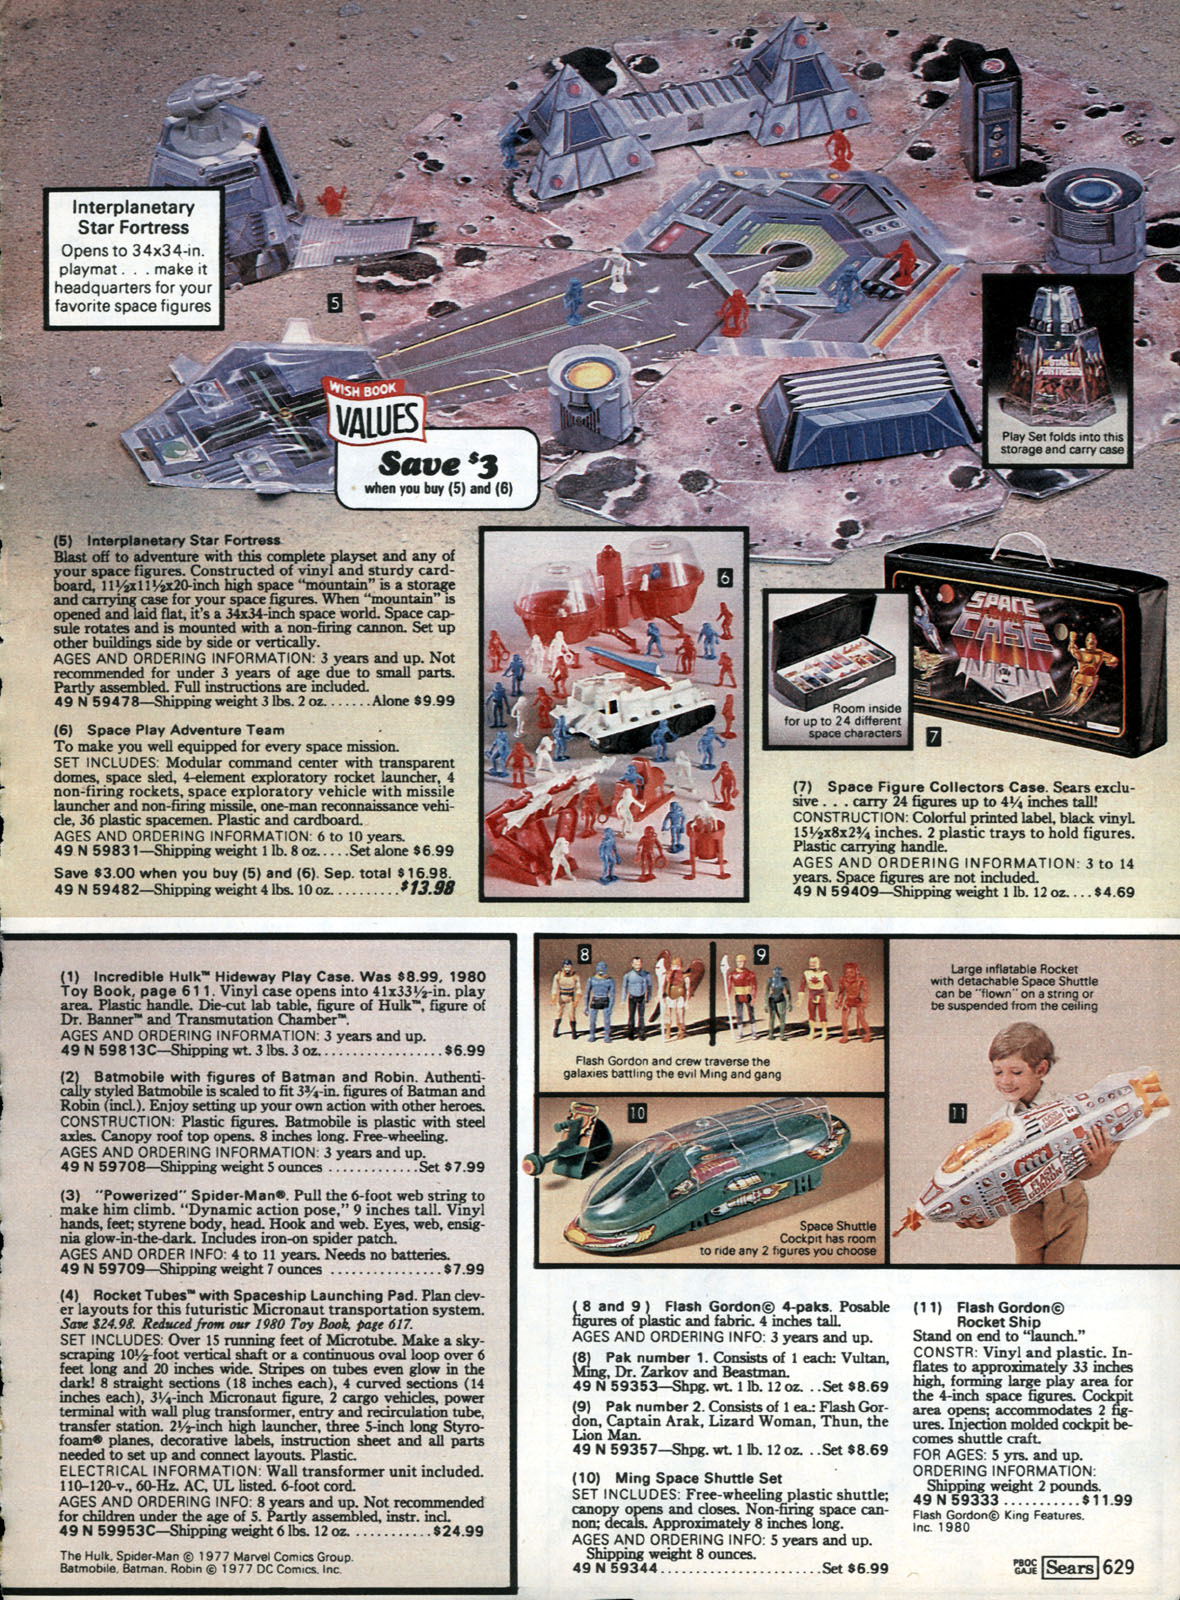 Interplanetary Star Fortress Playset in the 1980 Sears